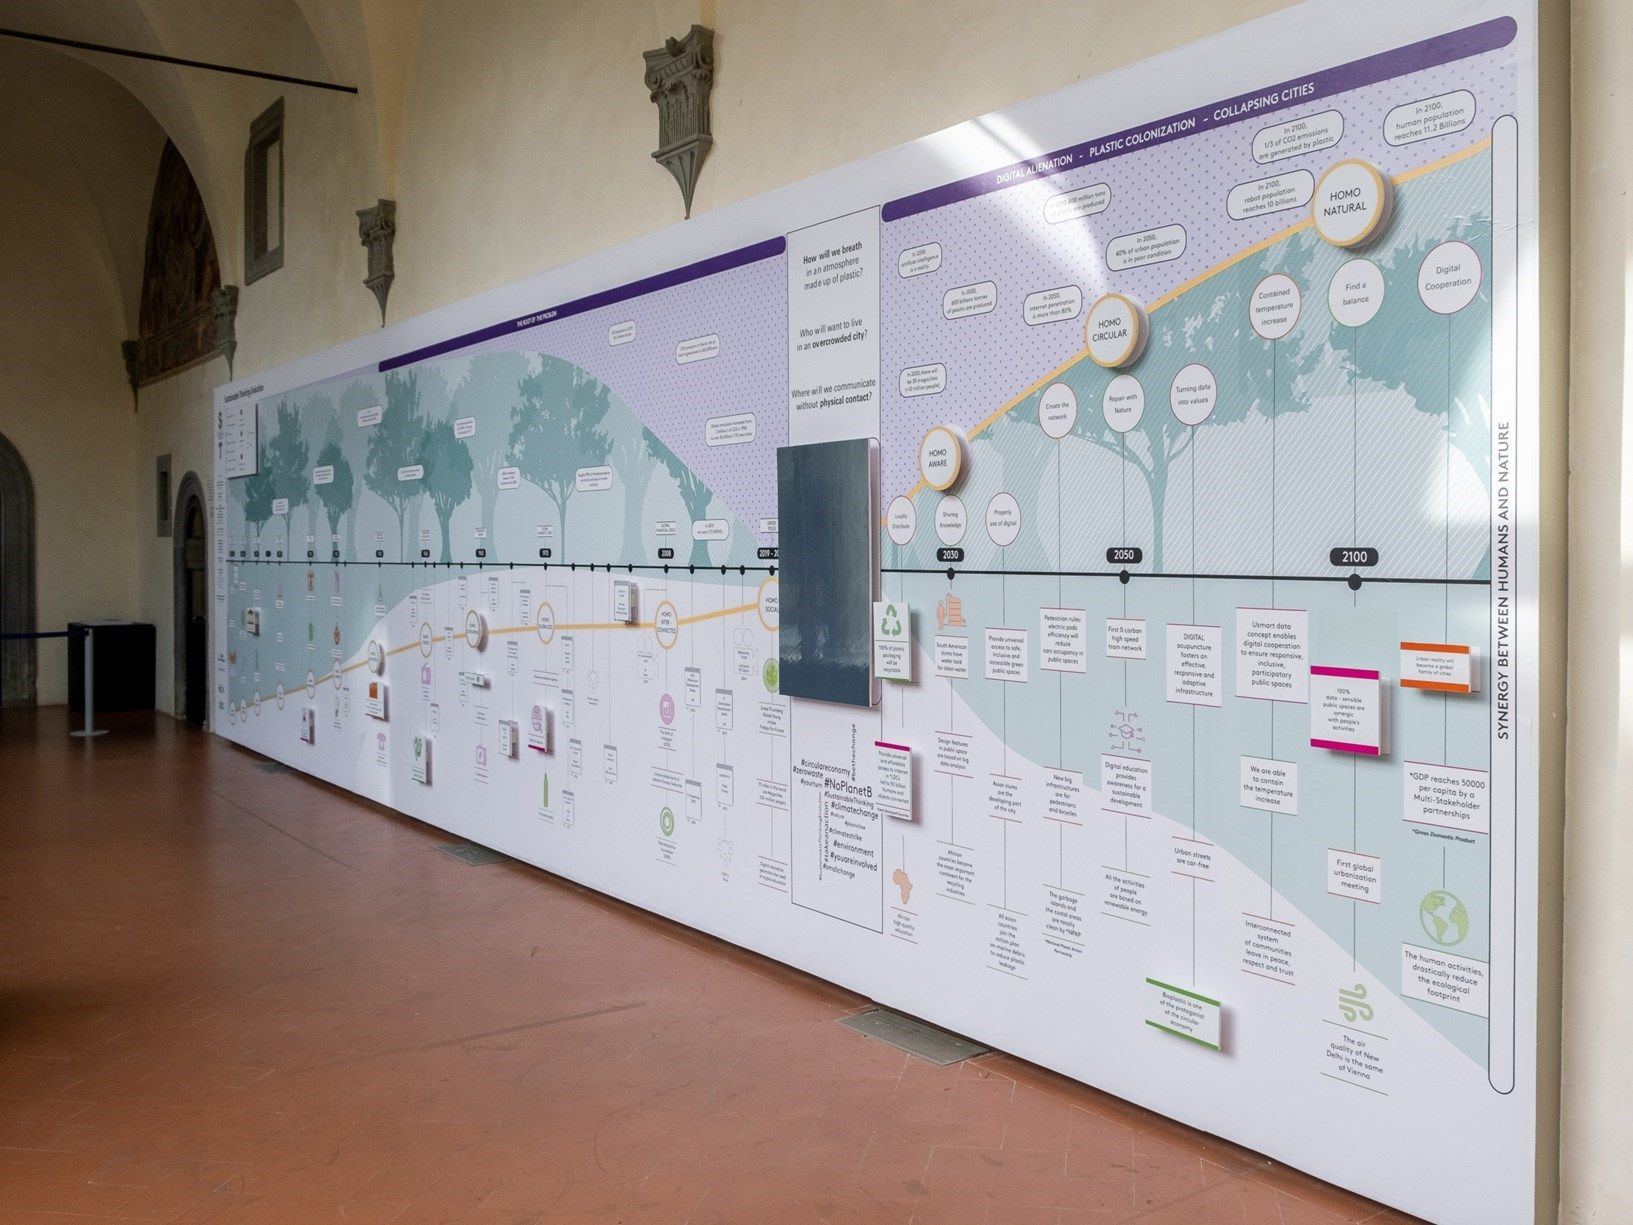 The Wall: Sustainable Thinking Evolution